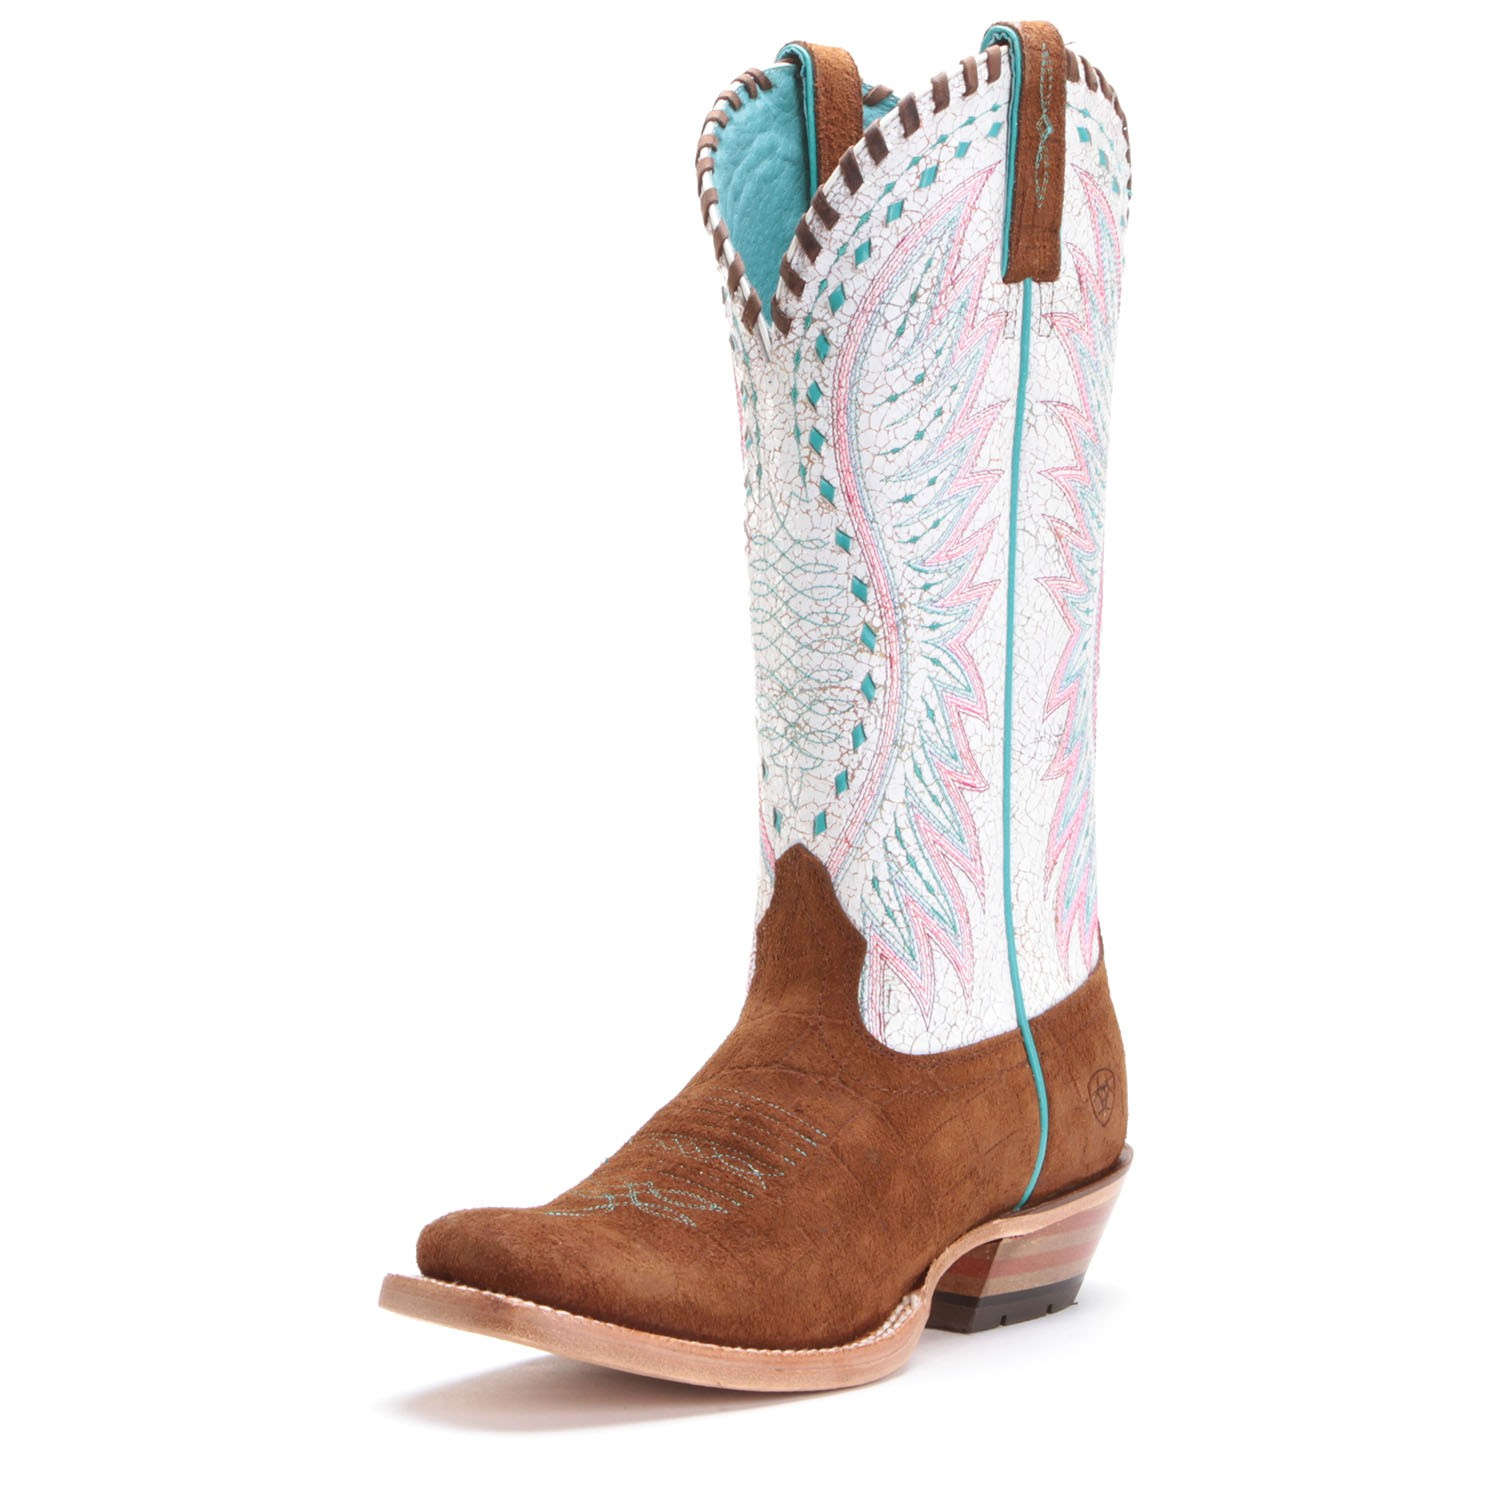 Ariat Womens Cowboy Boots Sale gxhsxEwo